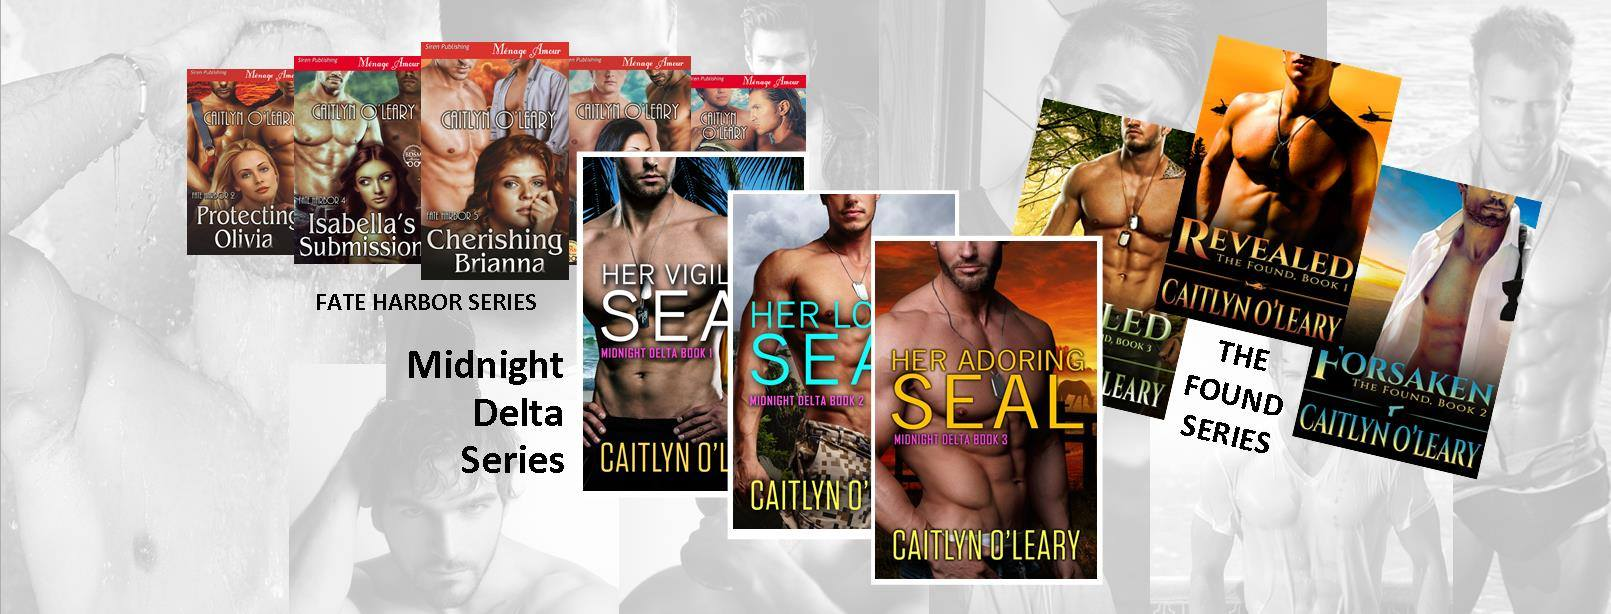 Books by Caitlyn O'Leary